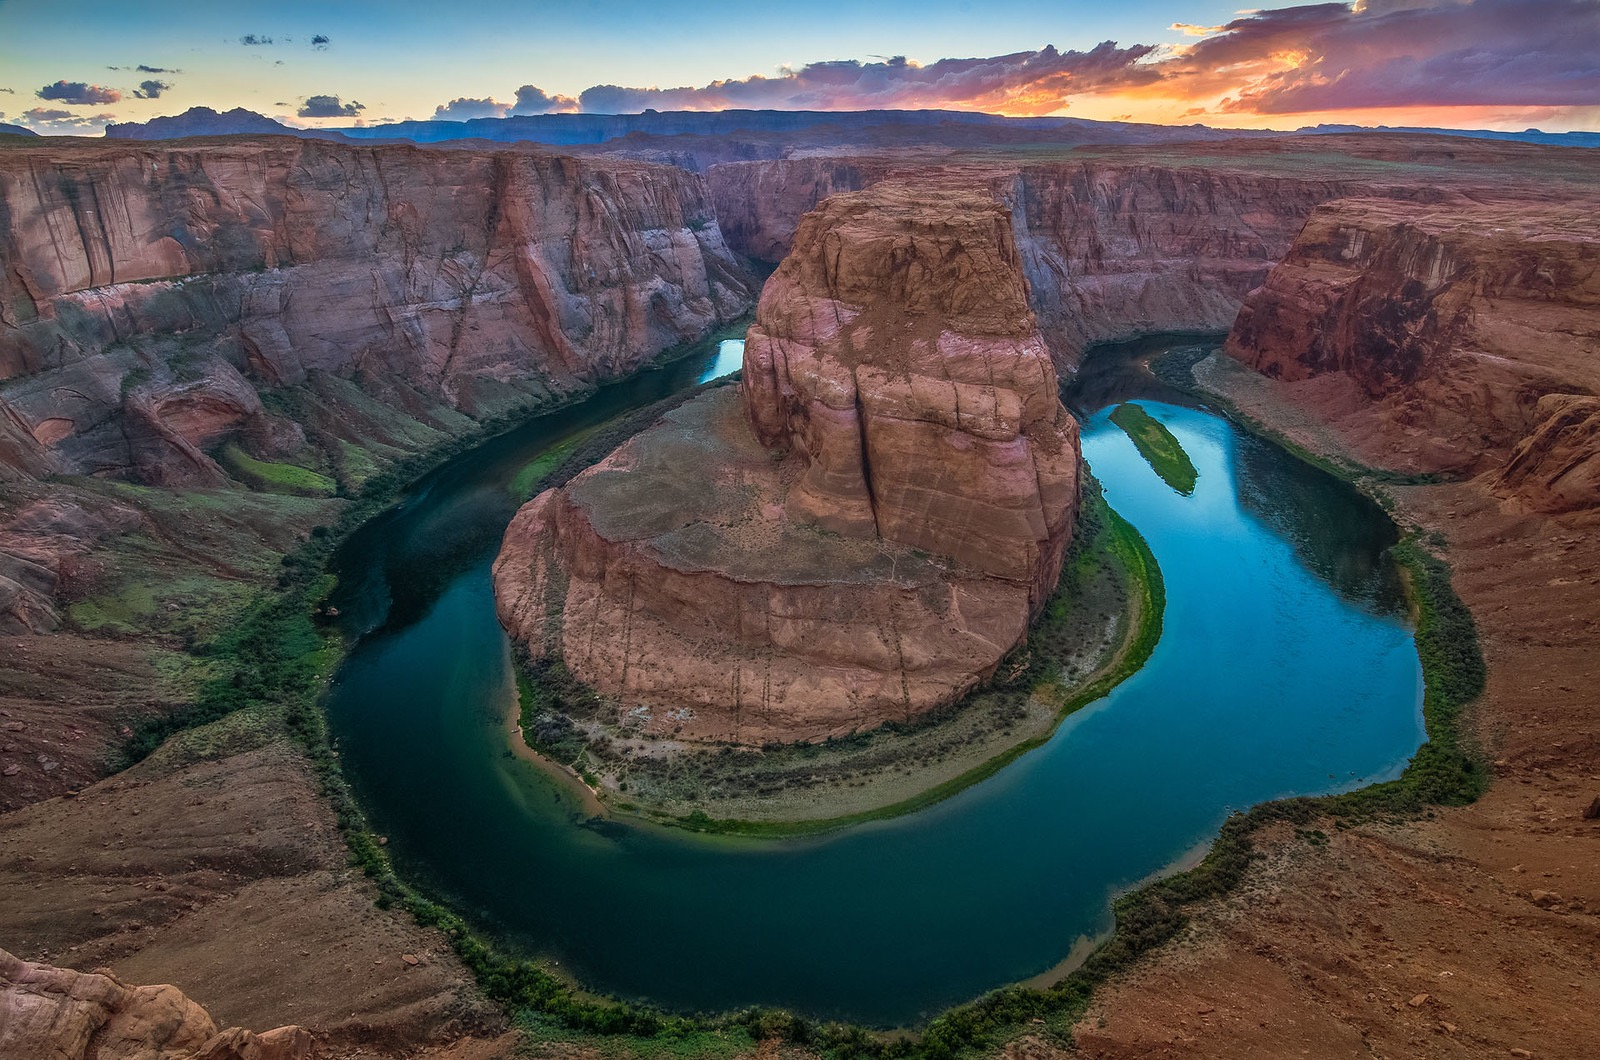 Horseshoe Bend on the Colorado River is located just north of the Grand Canyon. Photo by Crystal Brindle